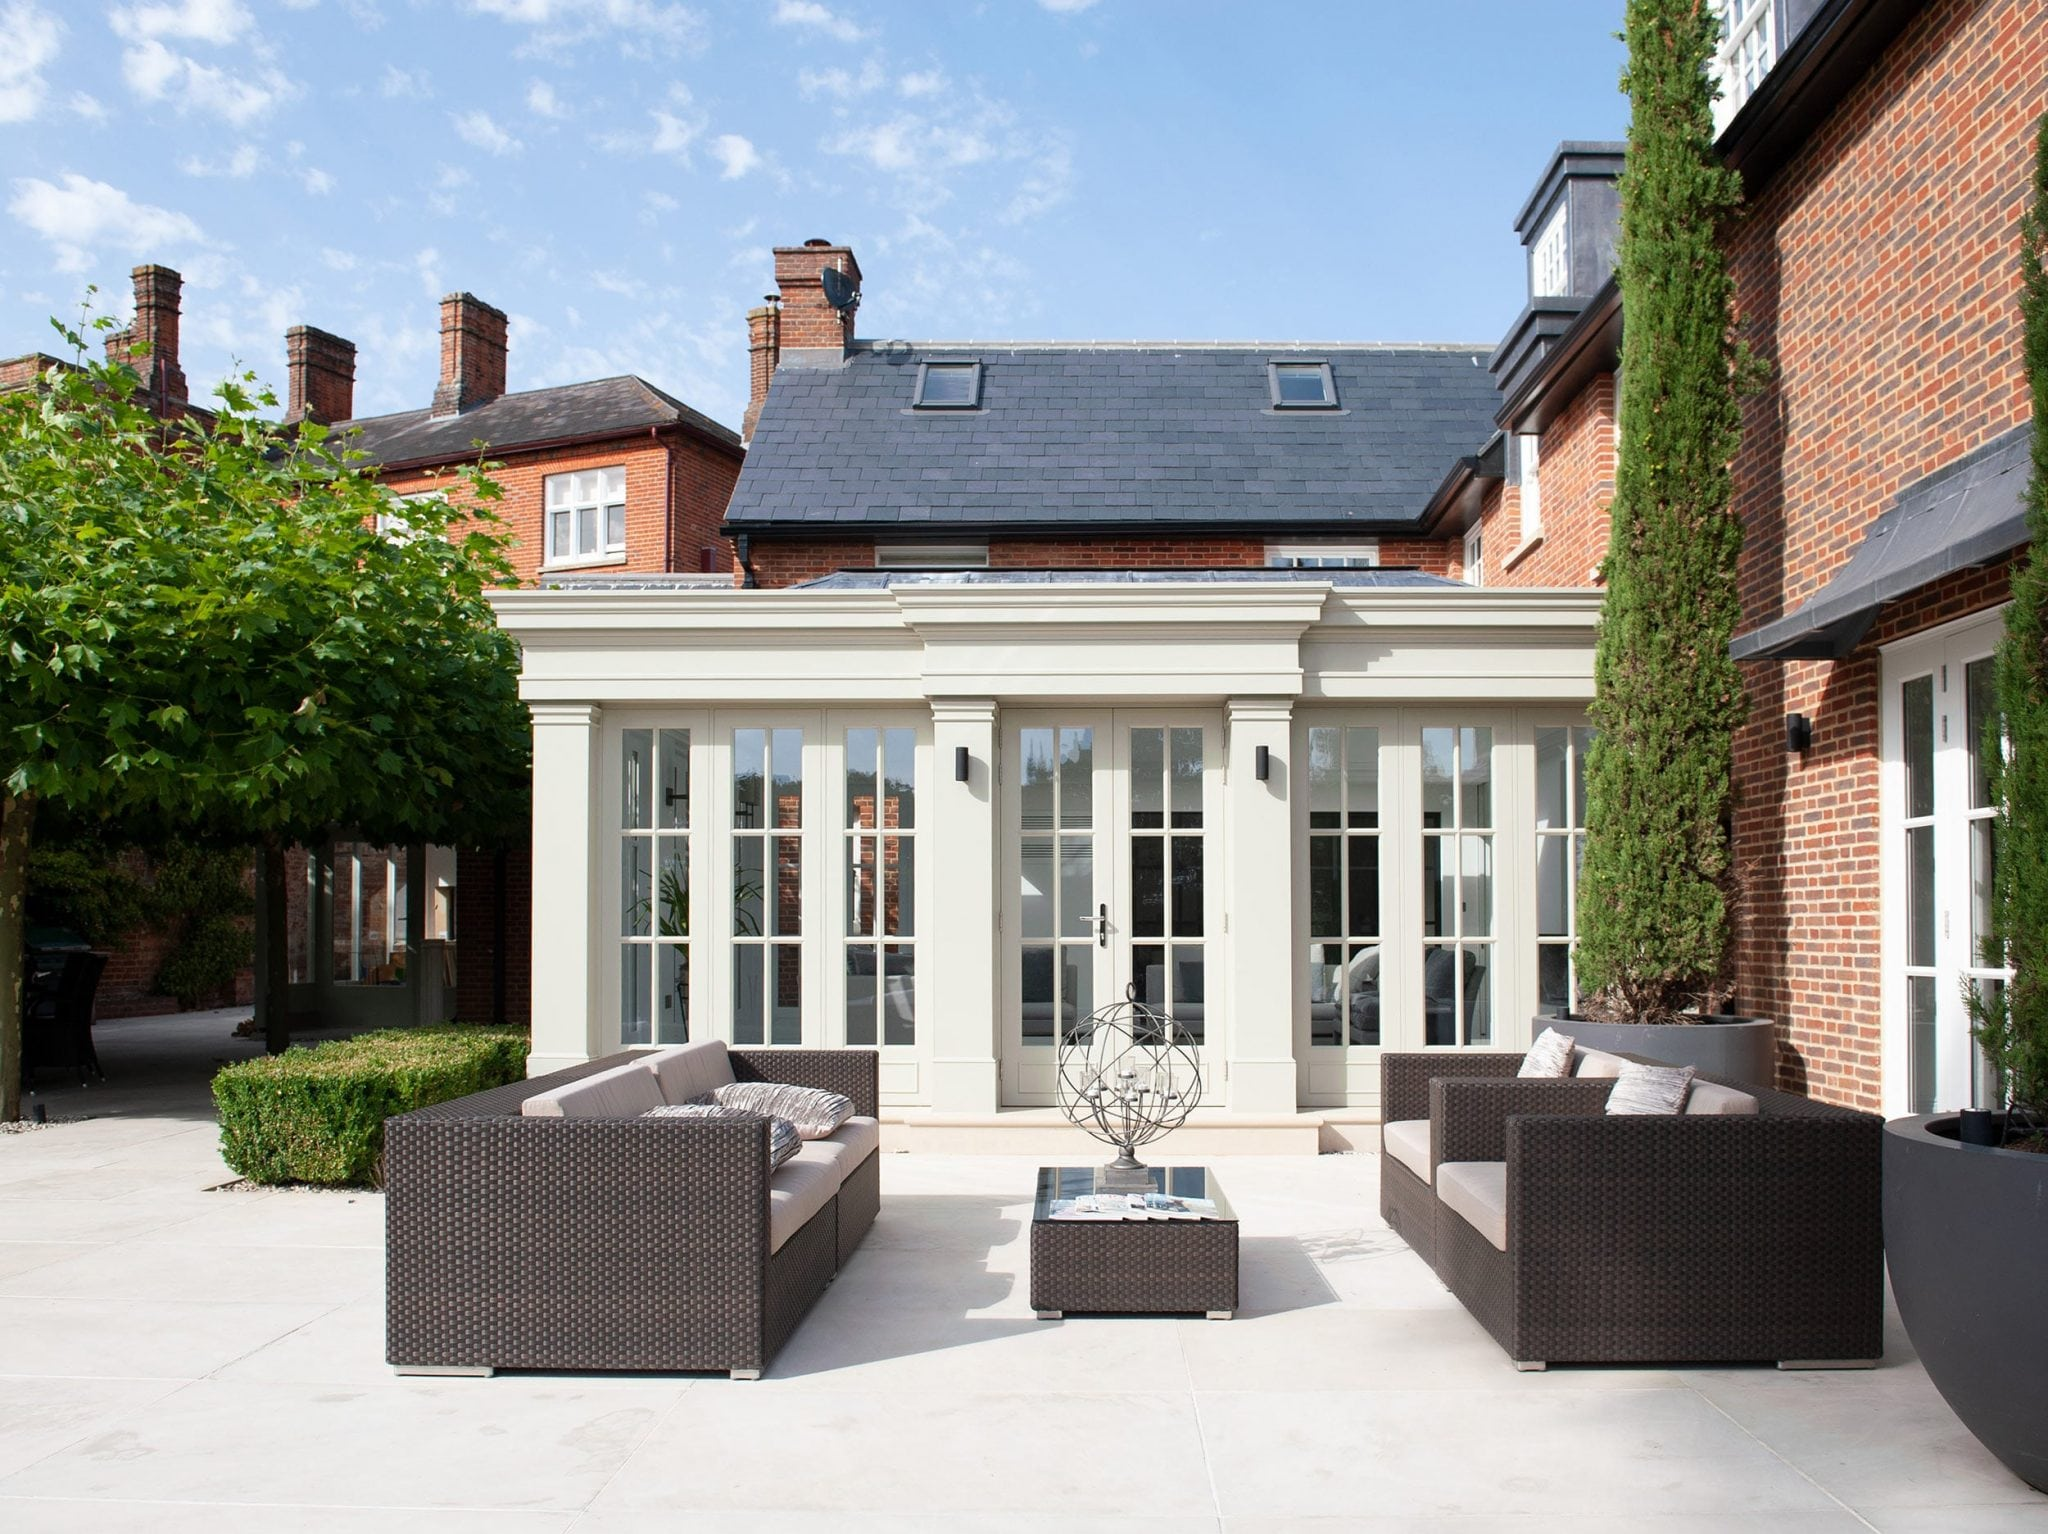 Berkshire - mansion orangery bespoke architecture conservatory period property